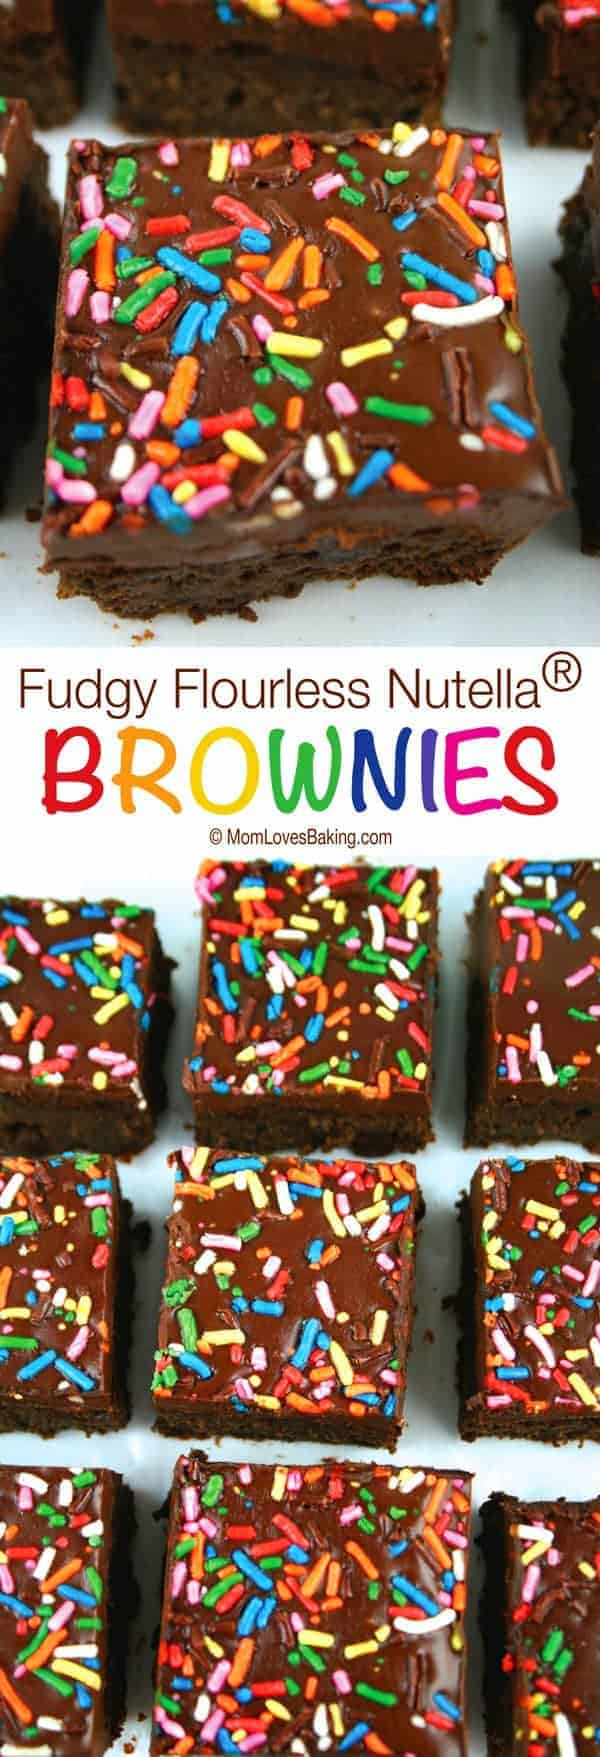 Fudgy Flourless Nutella Brownies